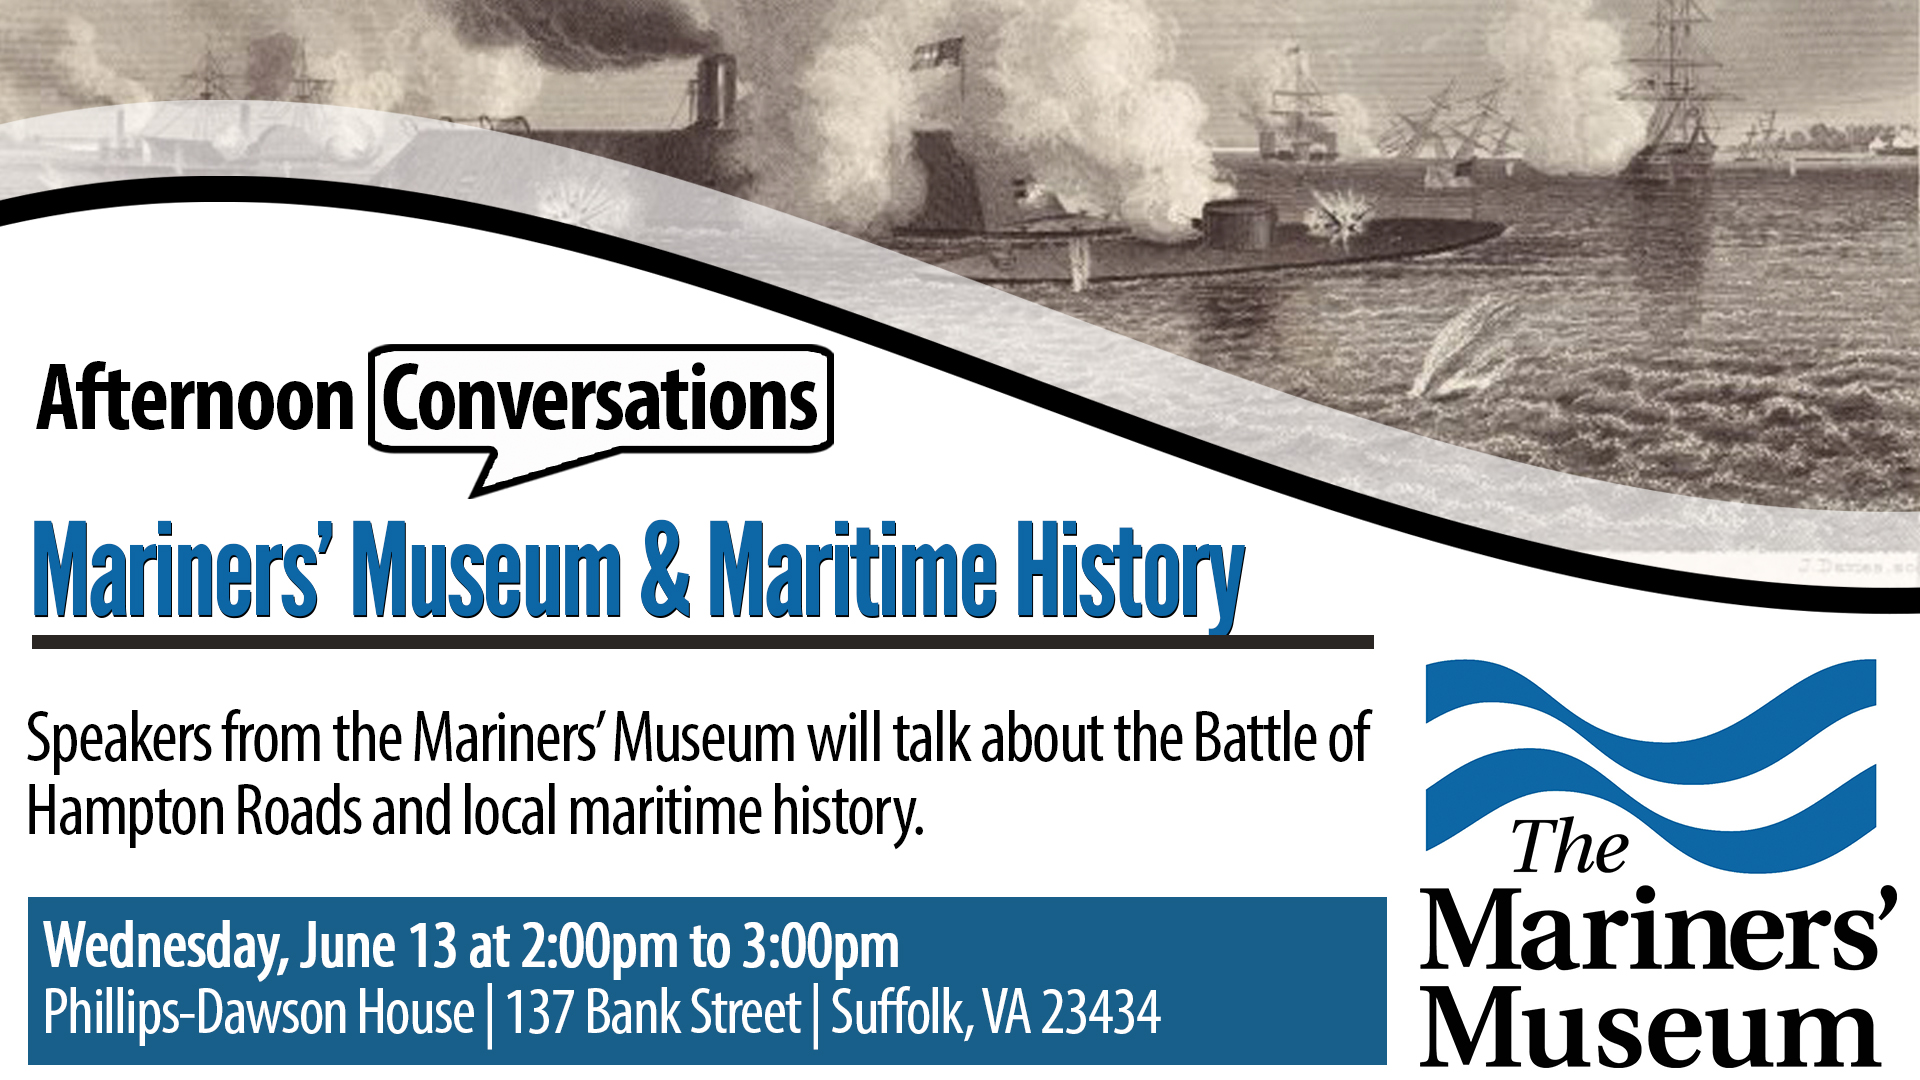 Afternoon Conversations: Mariners' Museum